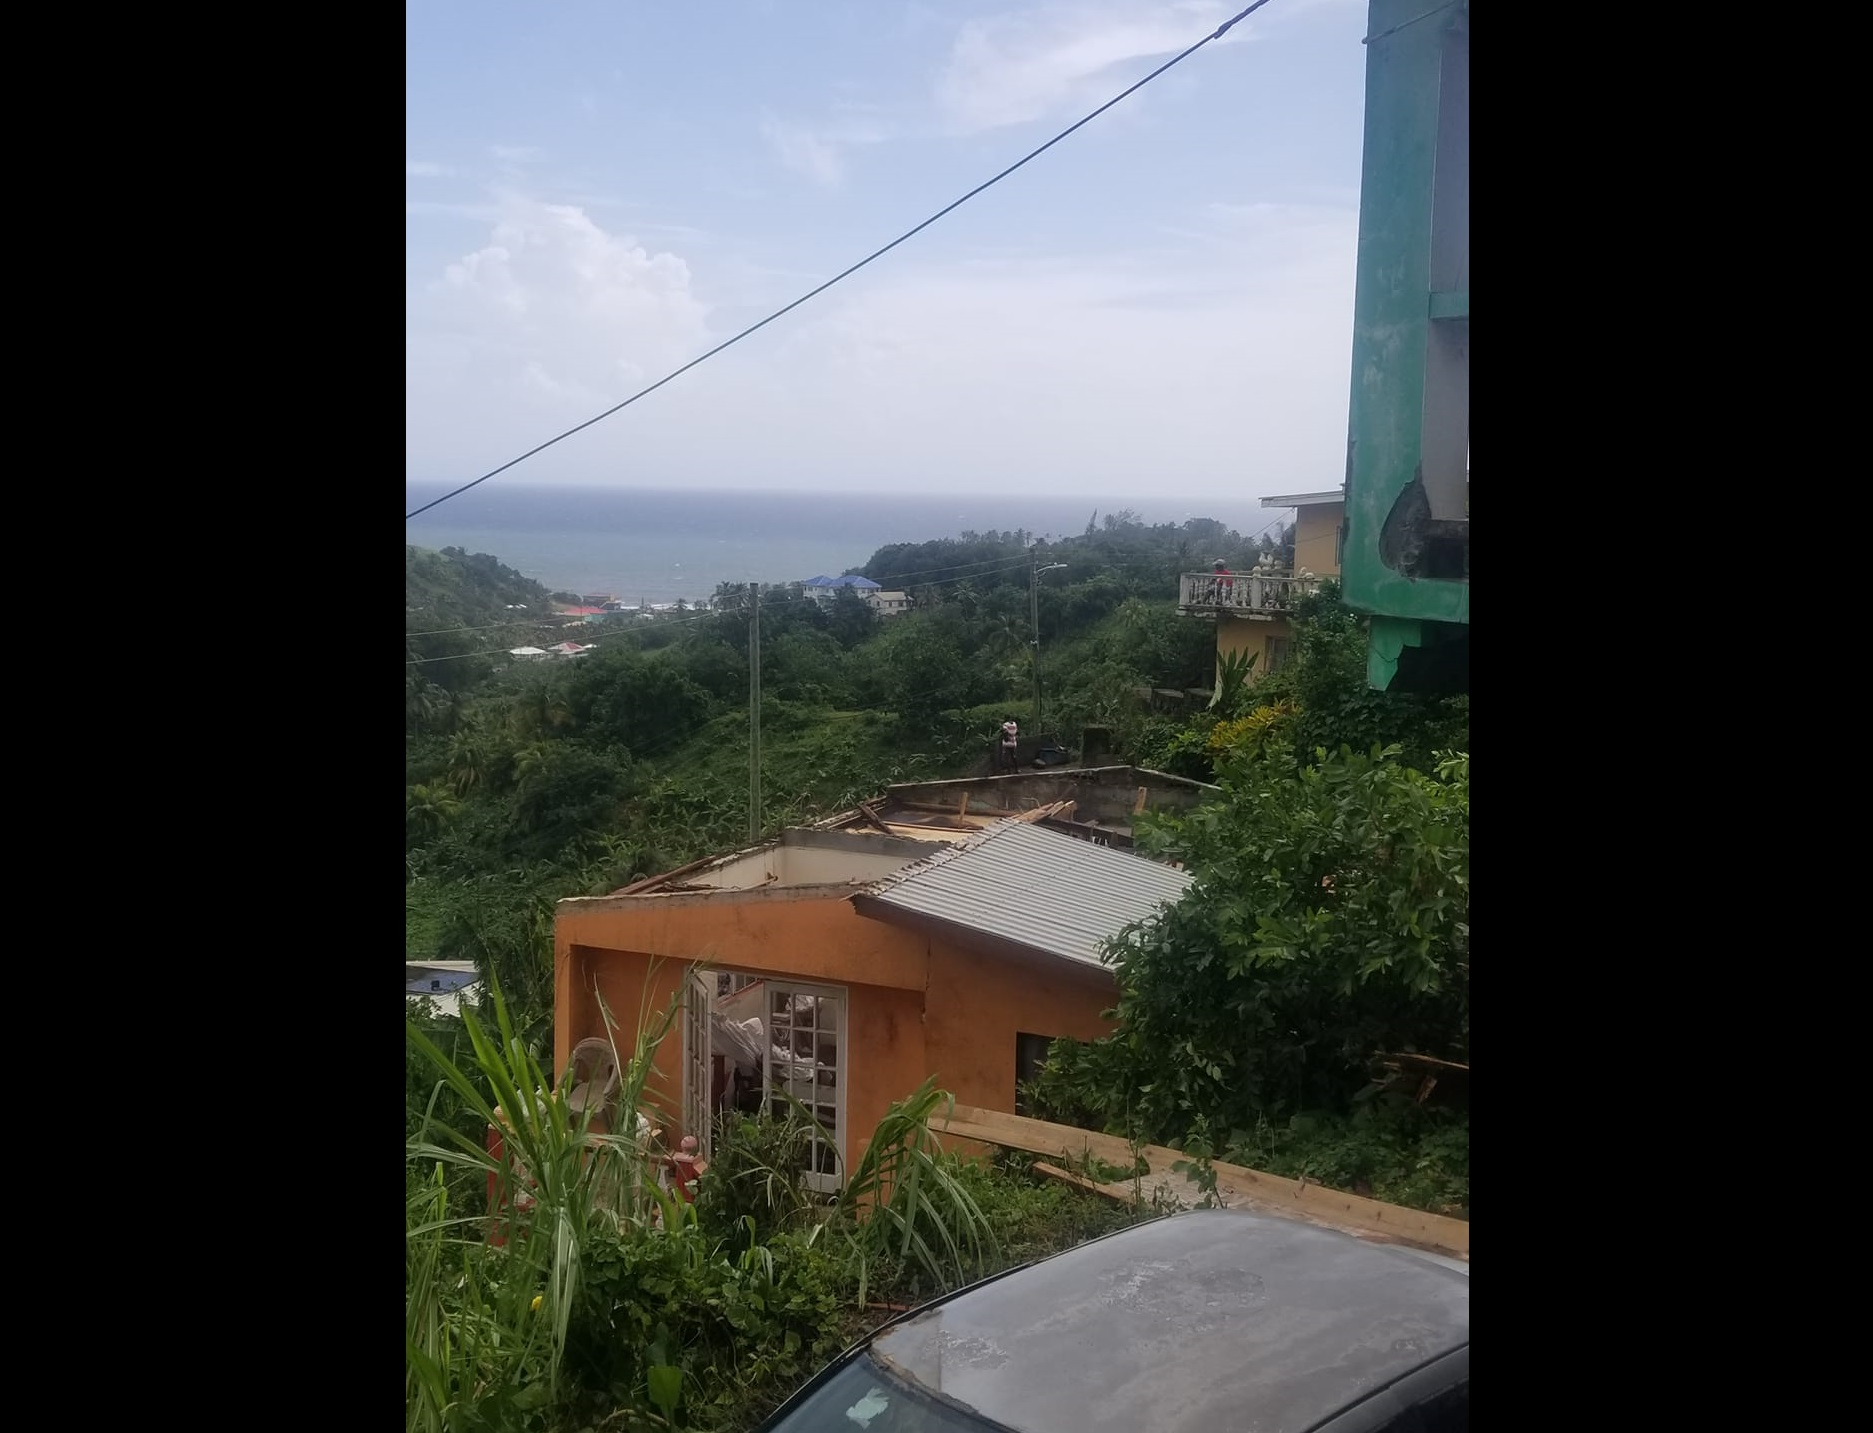 Aftermath of severe weather in St Vincent and the Grenadines on October 29. (Photo : Facebook)